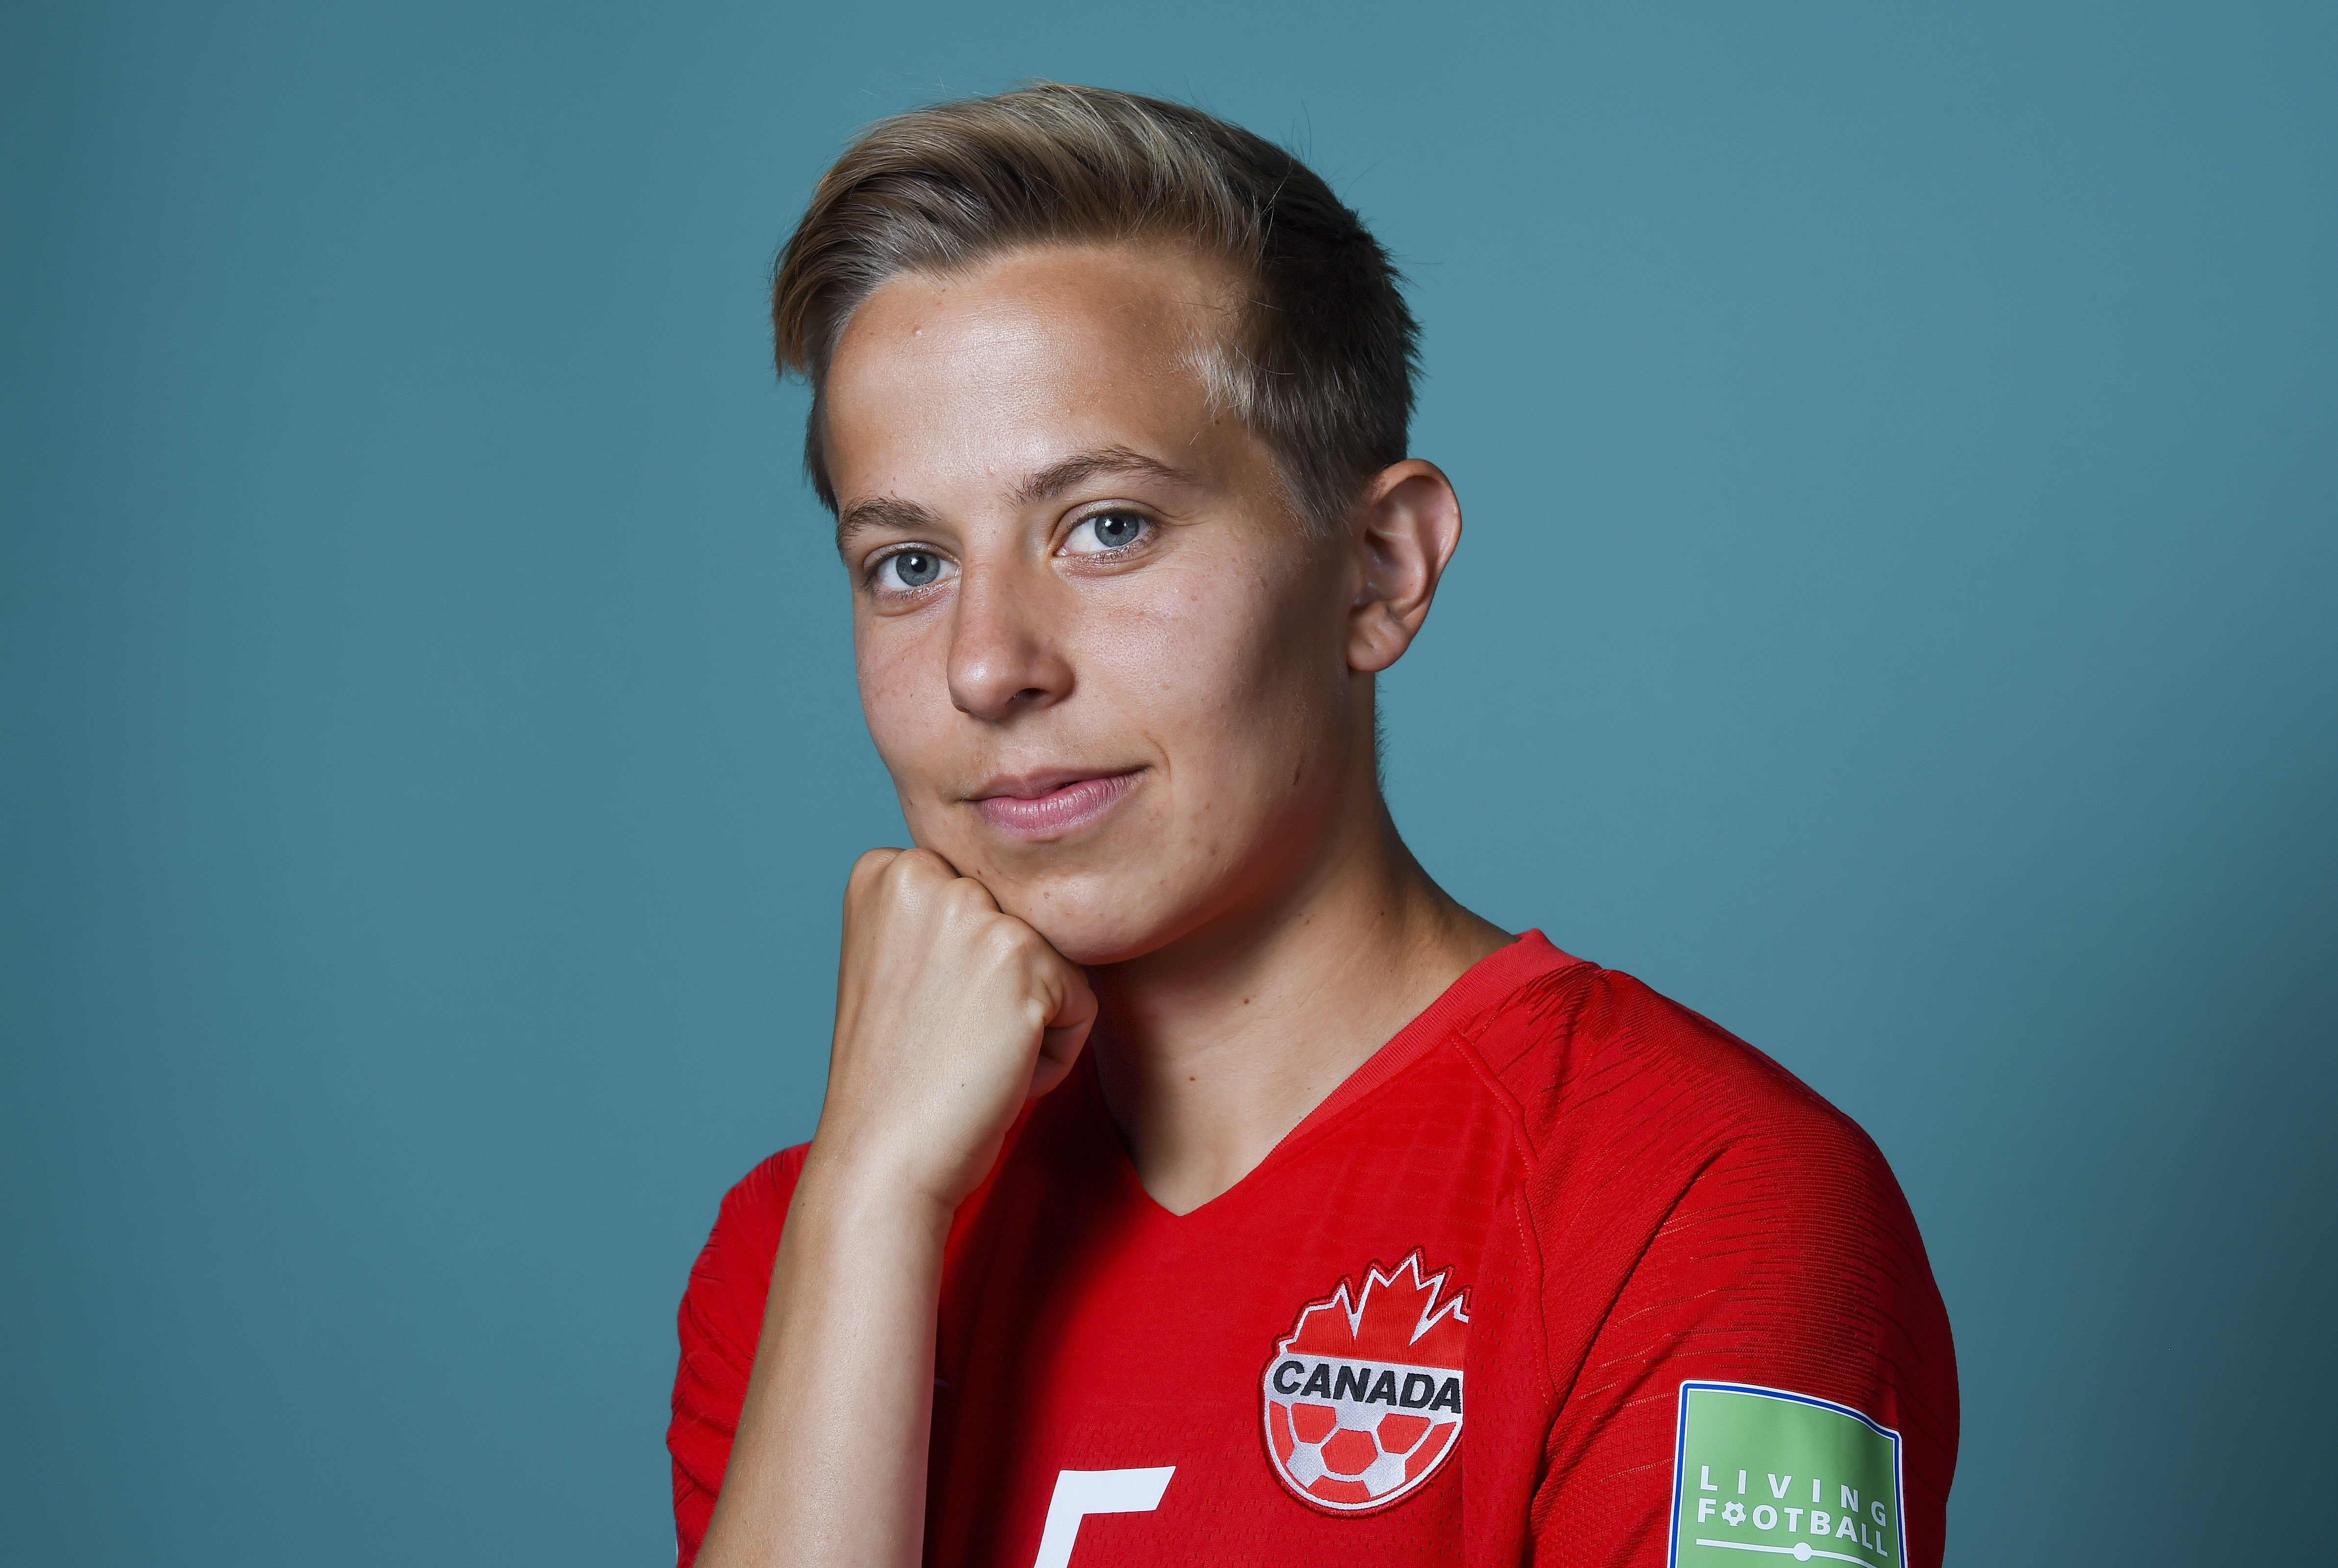 Rebecca Quinn of Canada poses for a portrait during the official FIFA Women's World Cup 2019 portrait session at Courtyard by Marriott Montpellier on June 07, 2019, in Montpellier, France. | Source: Getty Images.